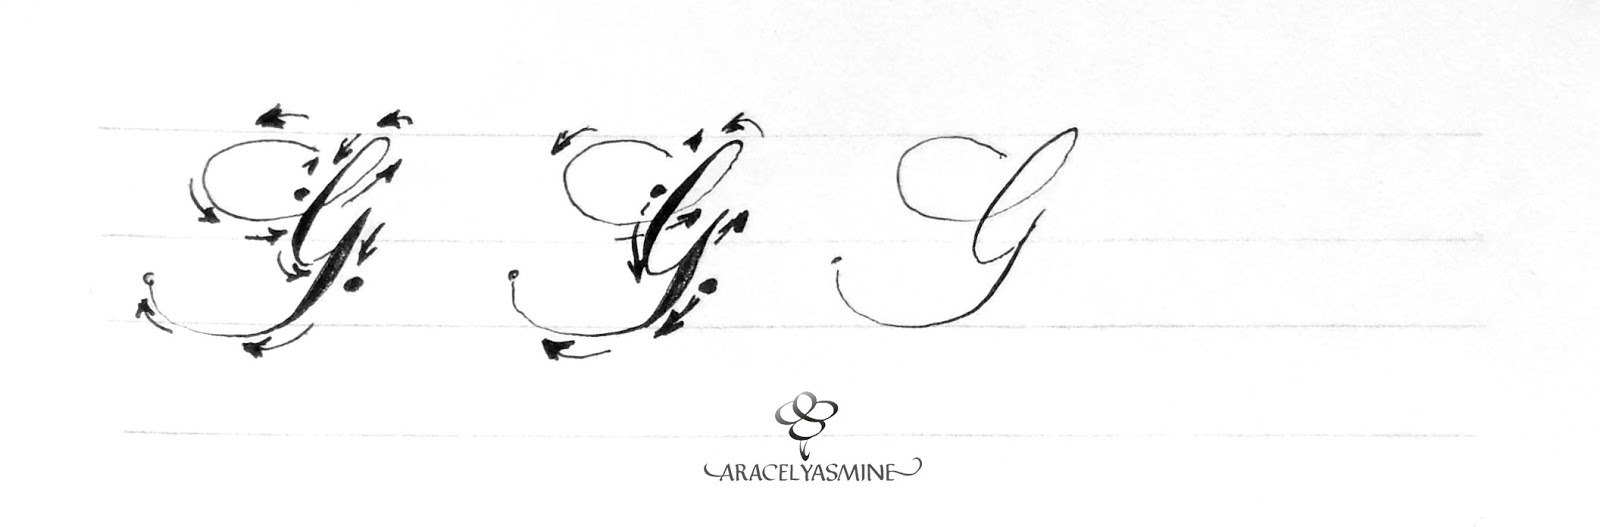 caligrafia copperplate como escribir letra g alfabeto